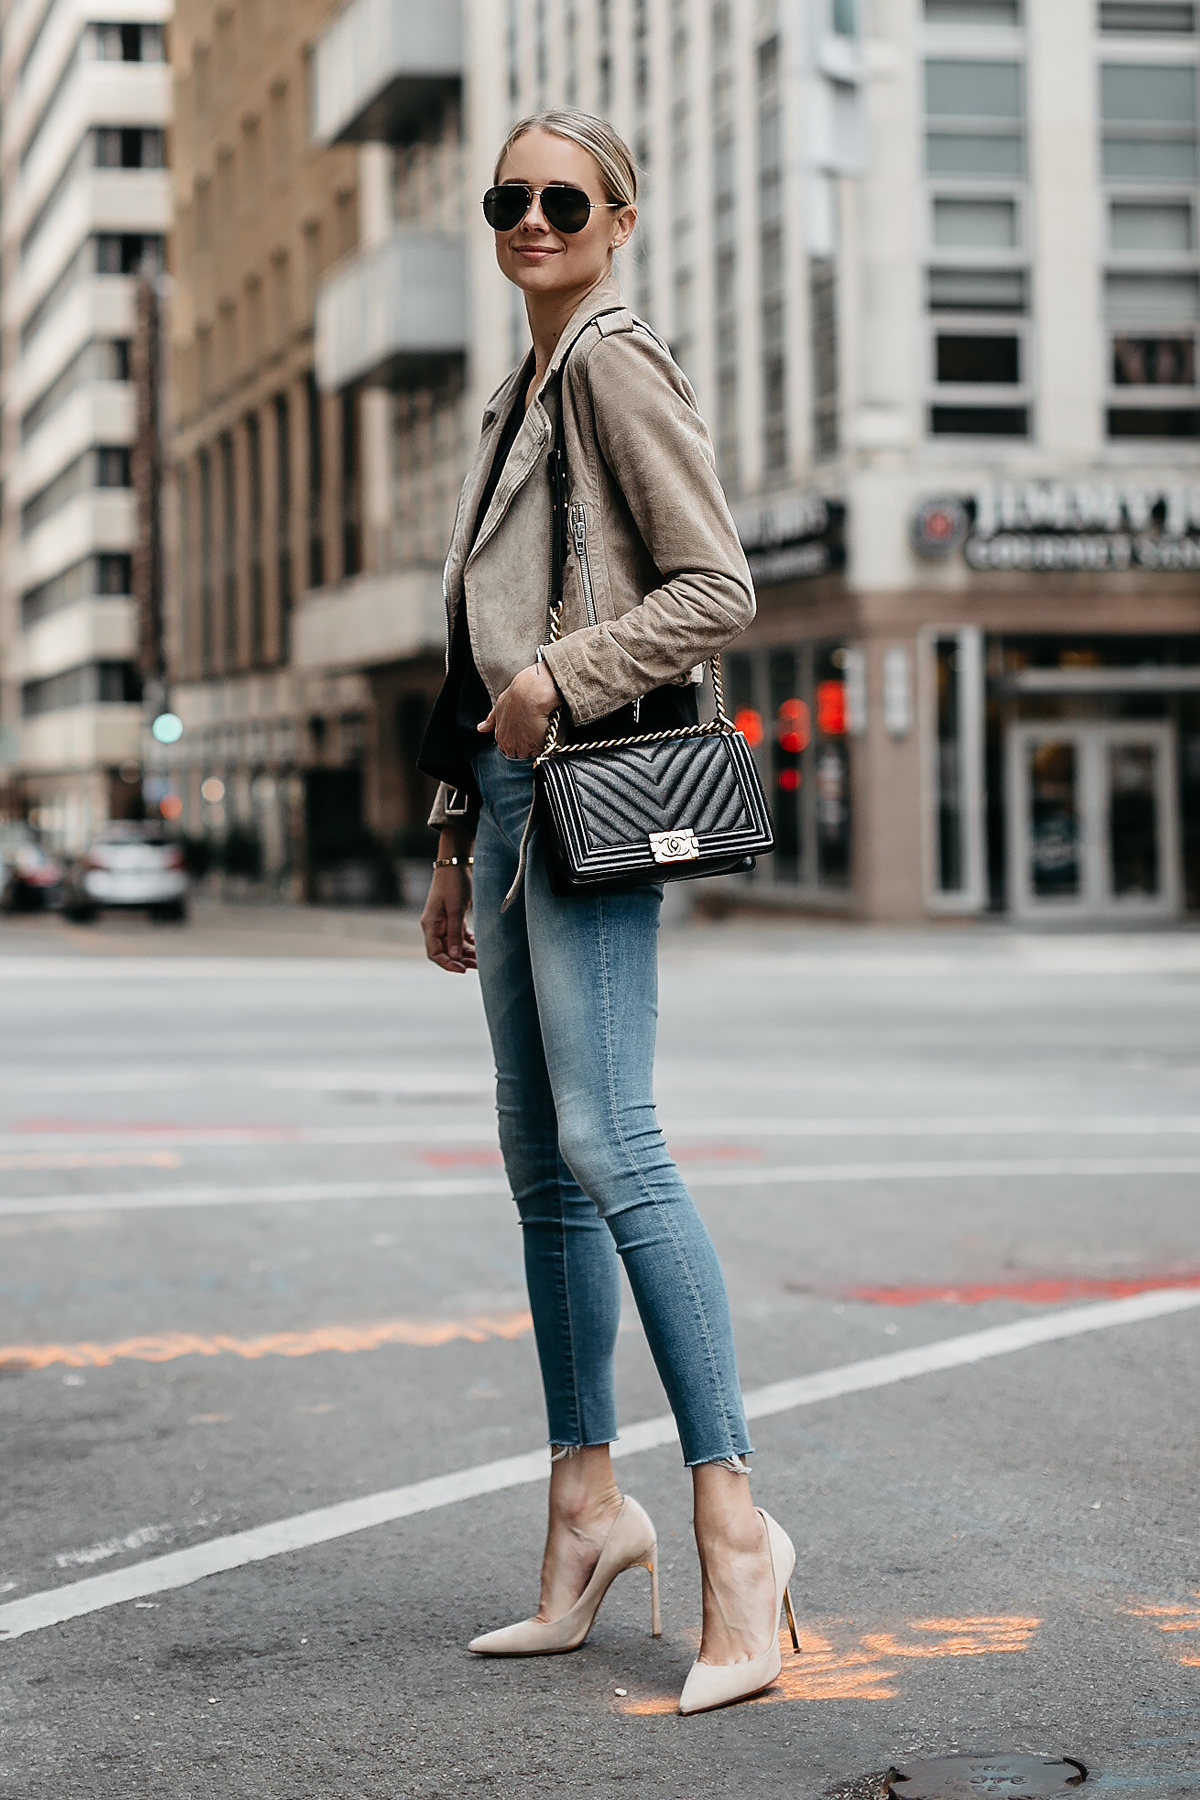 Blonde Woman Wearing Blanknyc Tan Suede Moto Jacket Black Tshirt Mother Denim Skinny Jeans Nude Heels Chanel Black Boy Bag Aviator Sunglasses Fashion Jackson Dallas Blogger Fashion Blogger Street Style